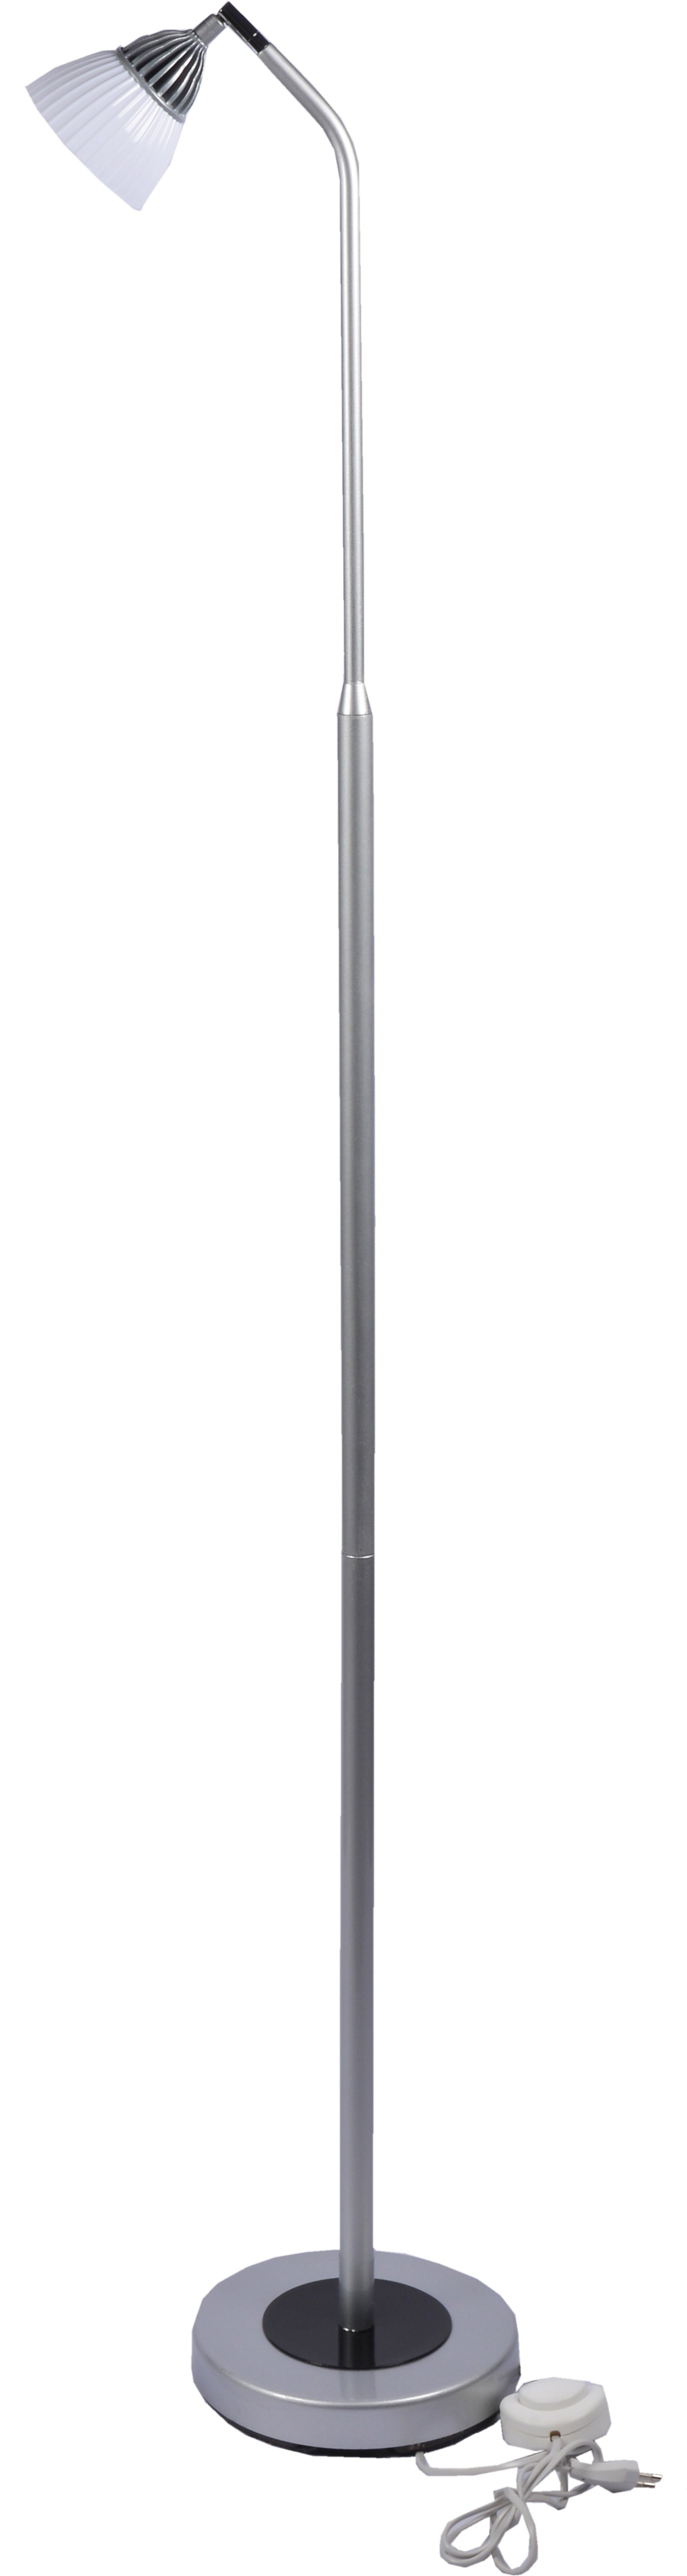 Renata LED Floor Light - Enlighten - NW - SL Study Lamp